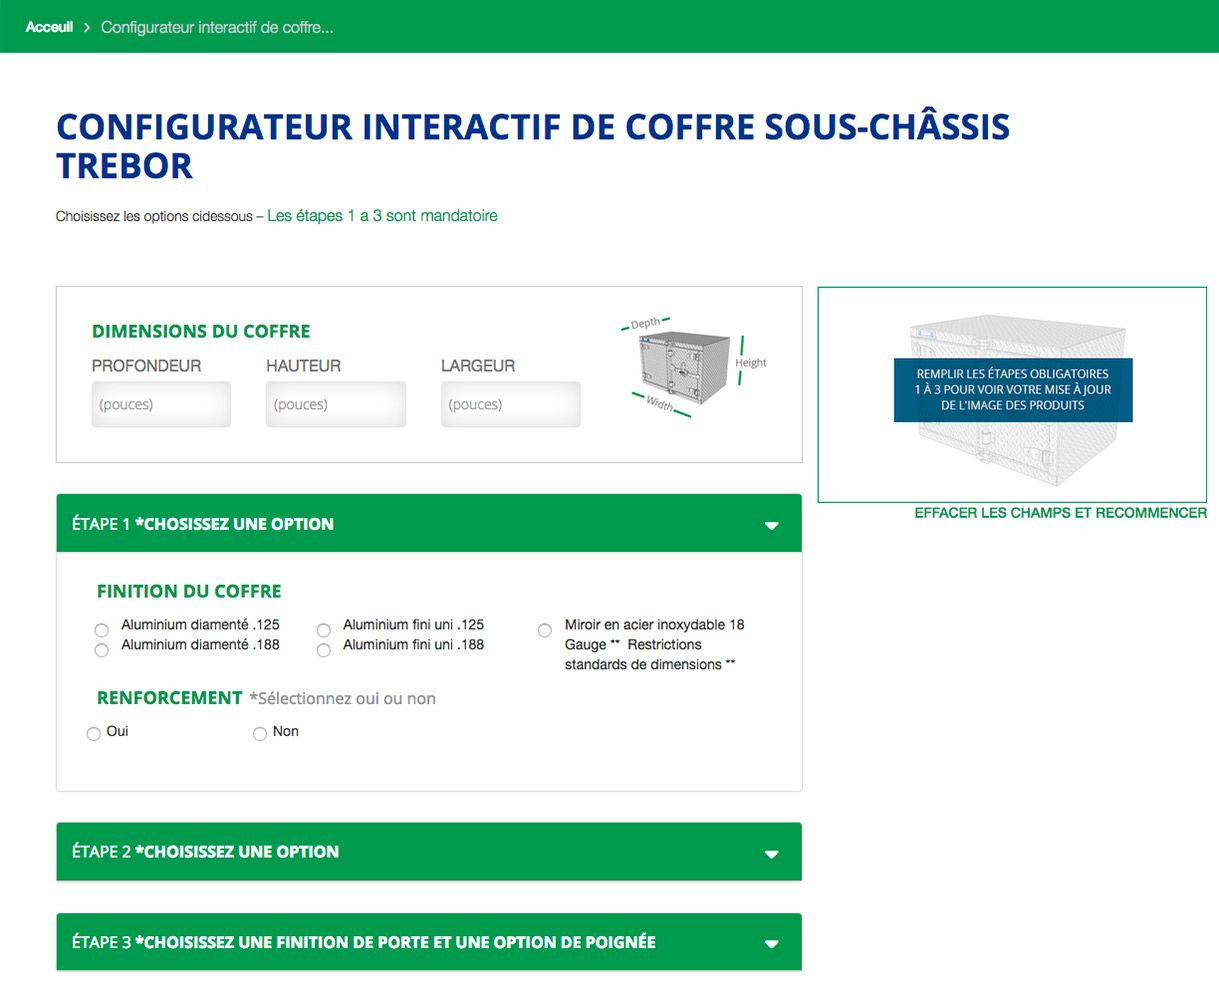 CONFIGURATEUR INTERACTIF